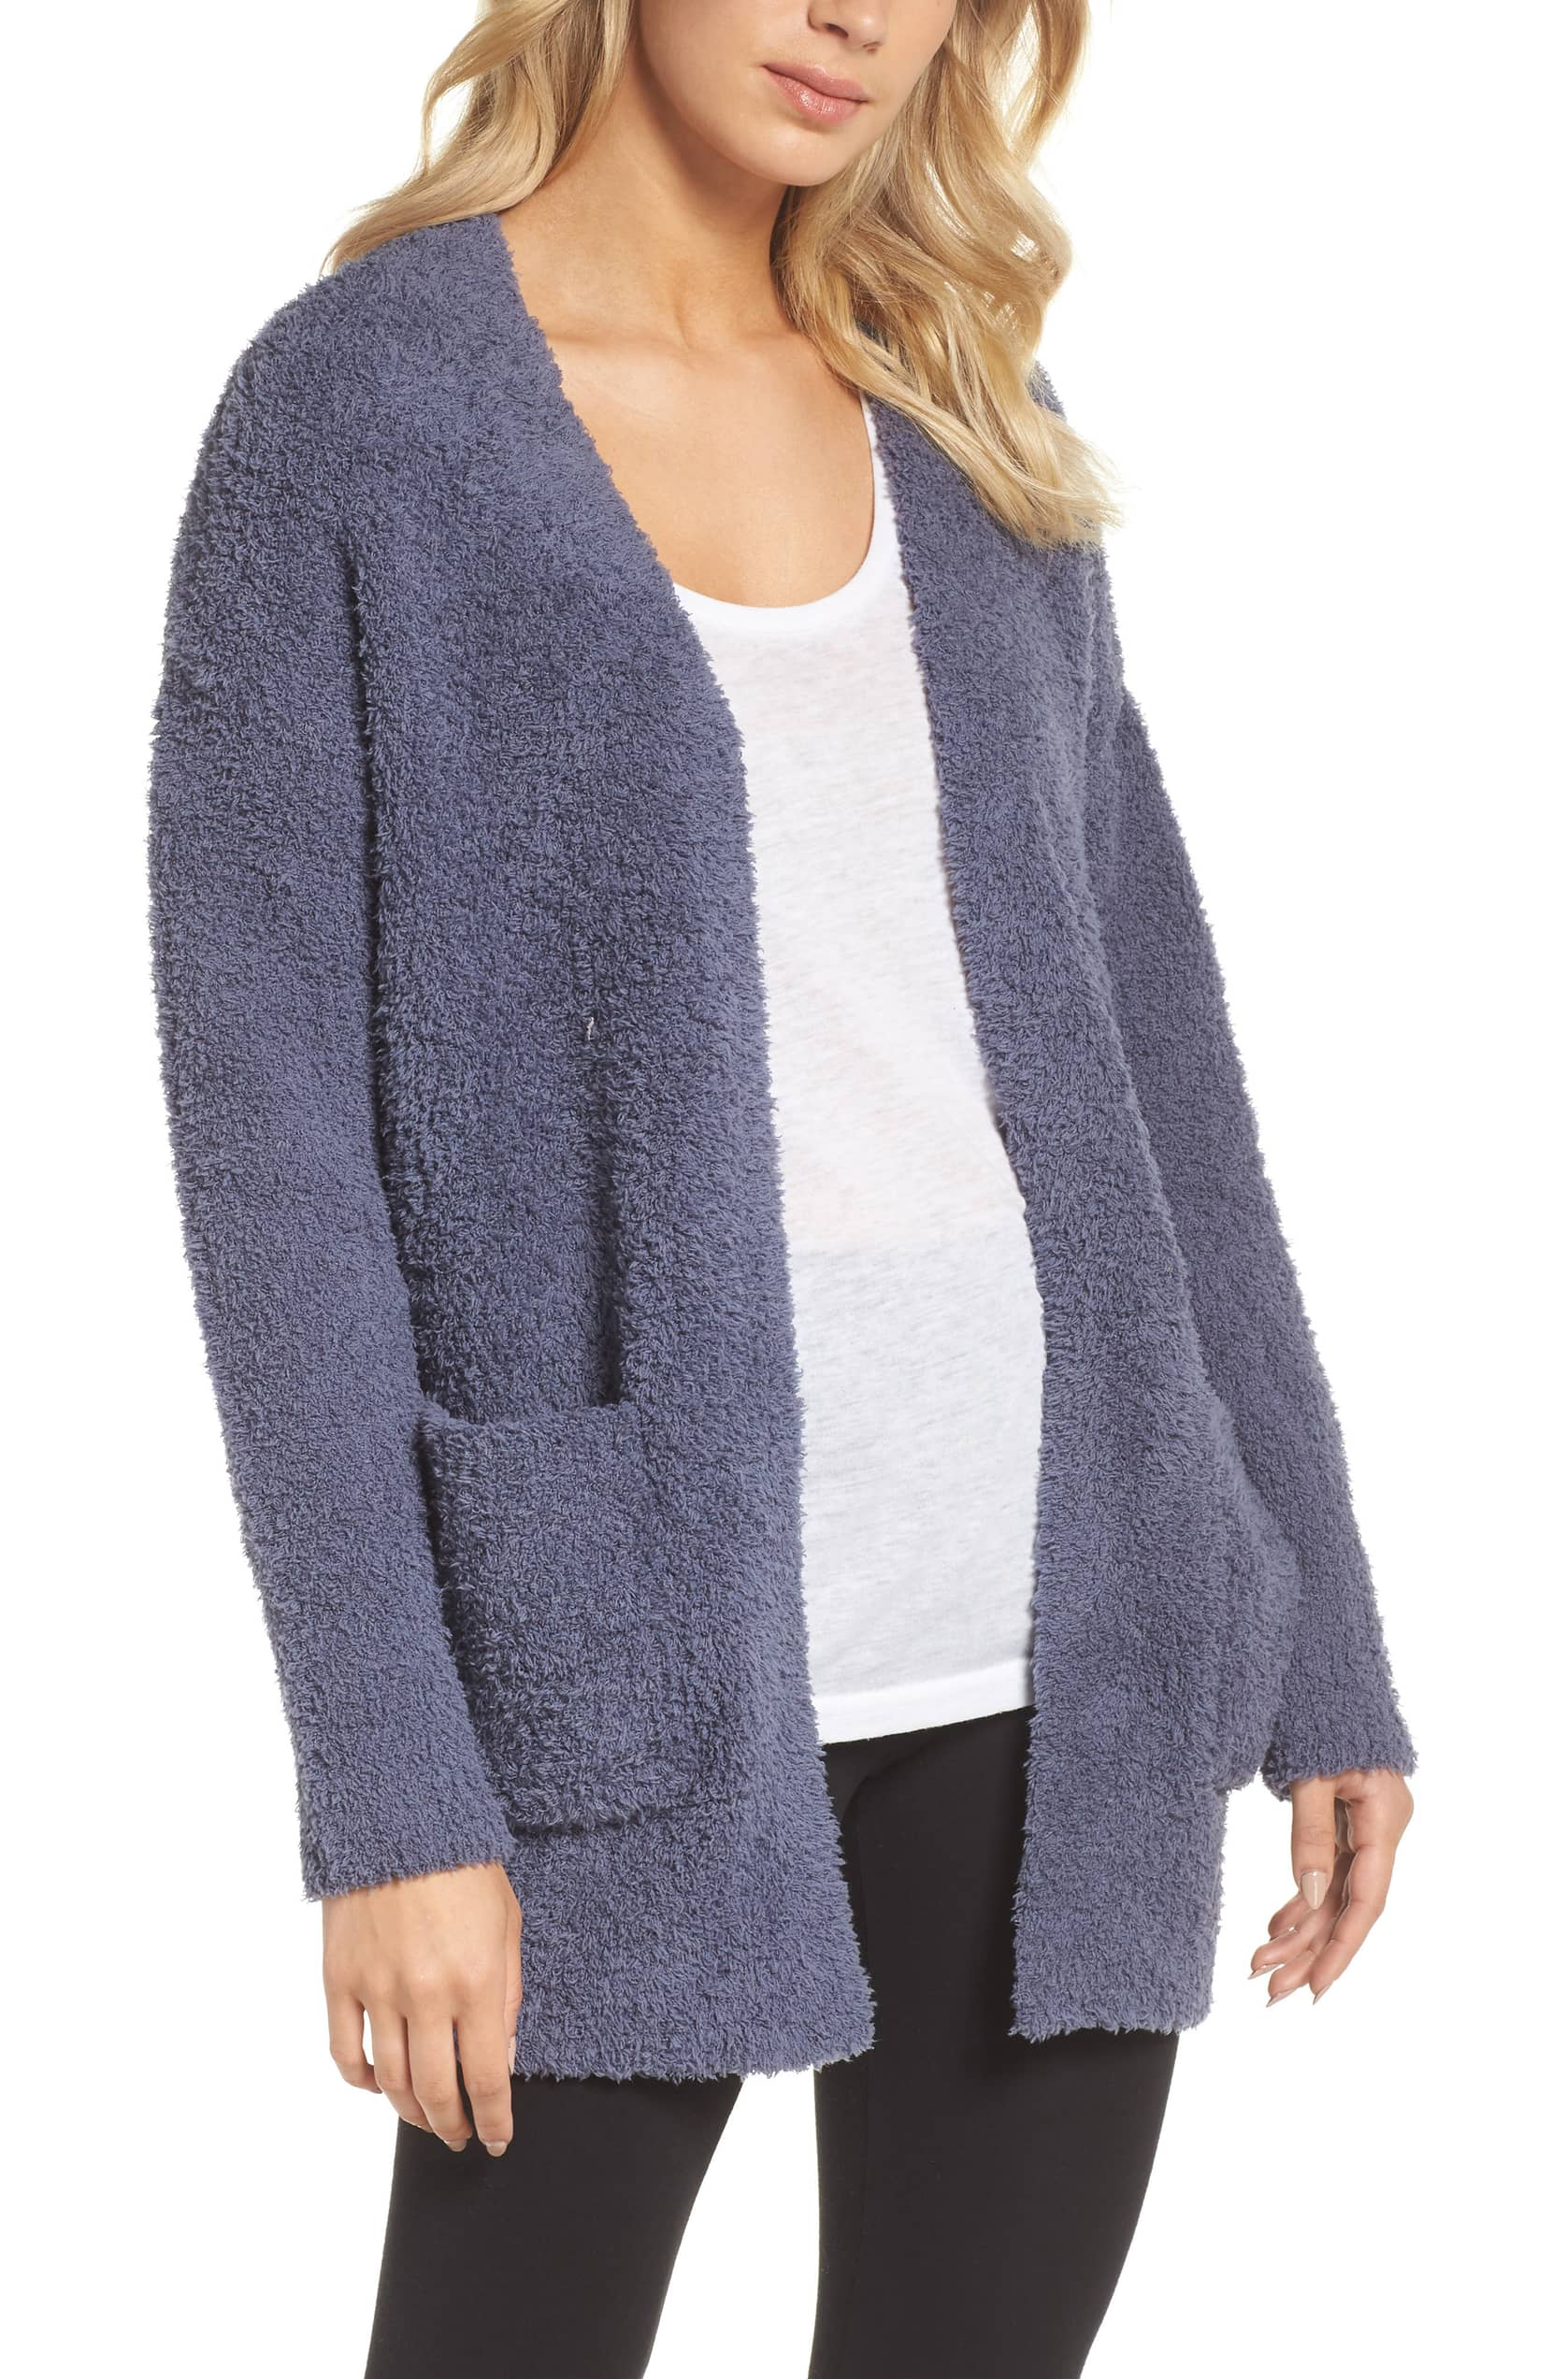 Stay Cozy In This Oversized Barefoot Dreams Cardigan